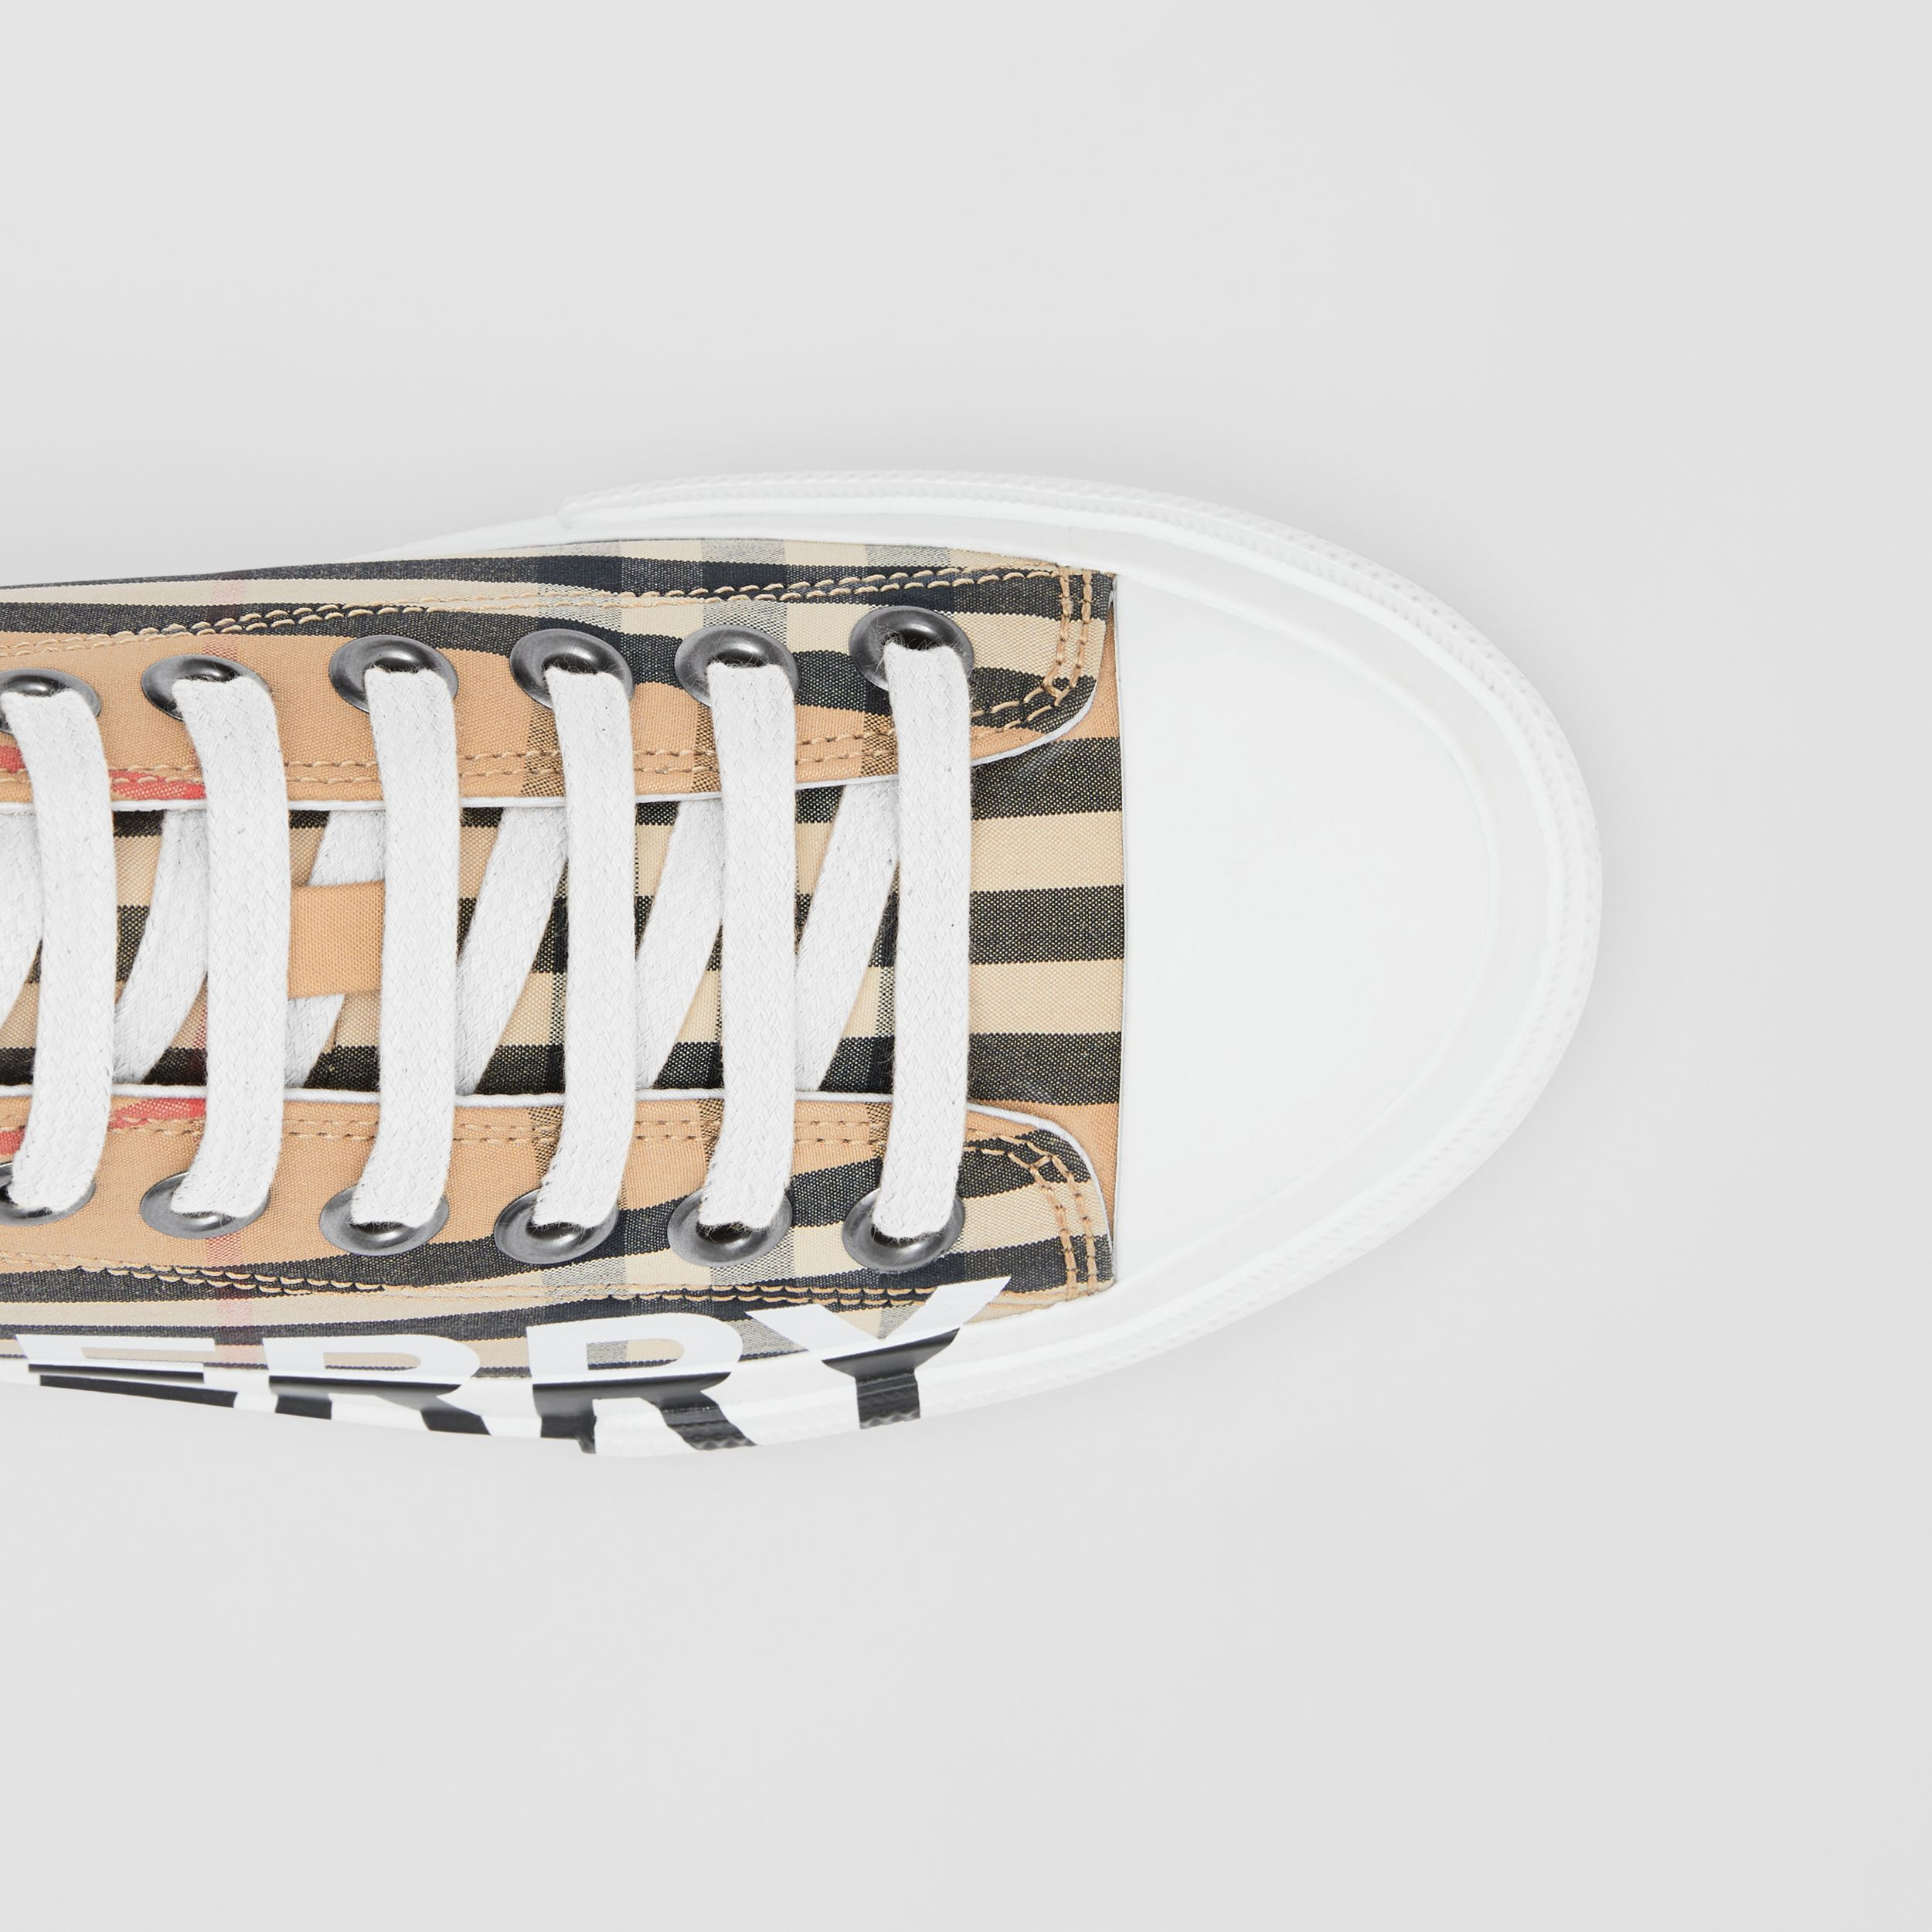 Logo Print Vintage Check Cotton Sneakers in Archive Beige - Women | Burberry Canada - 2